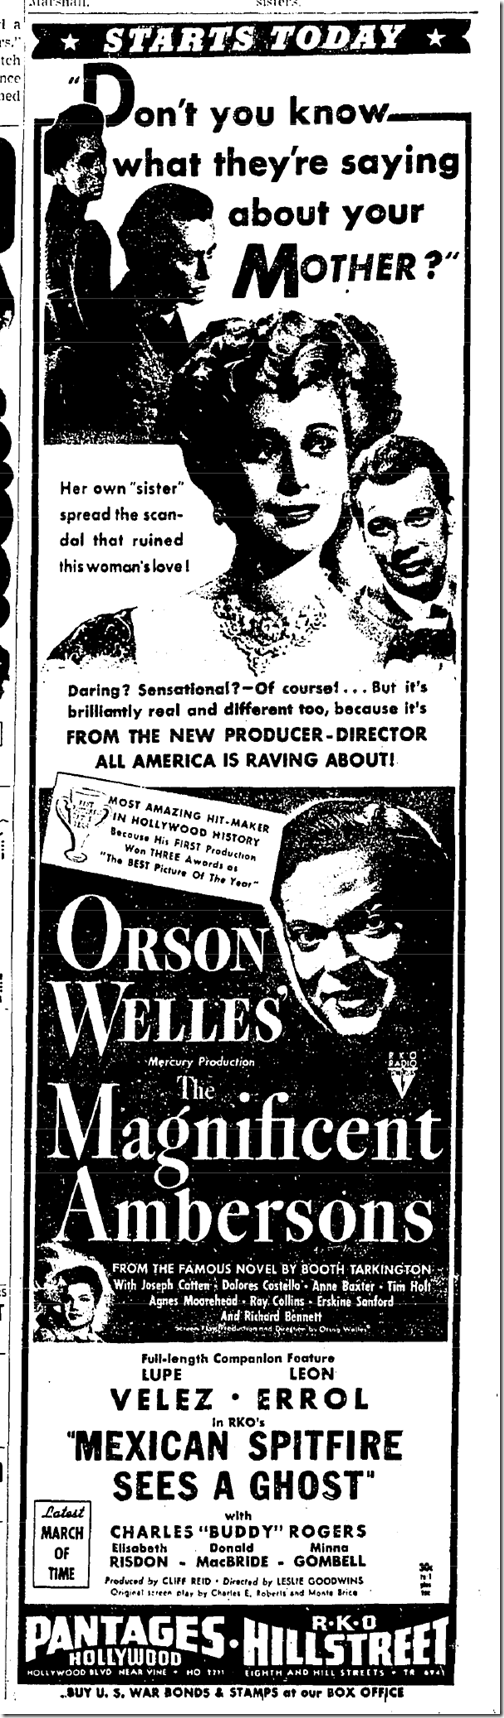 July 7, 1942, Magnificent Ambersons